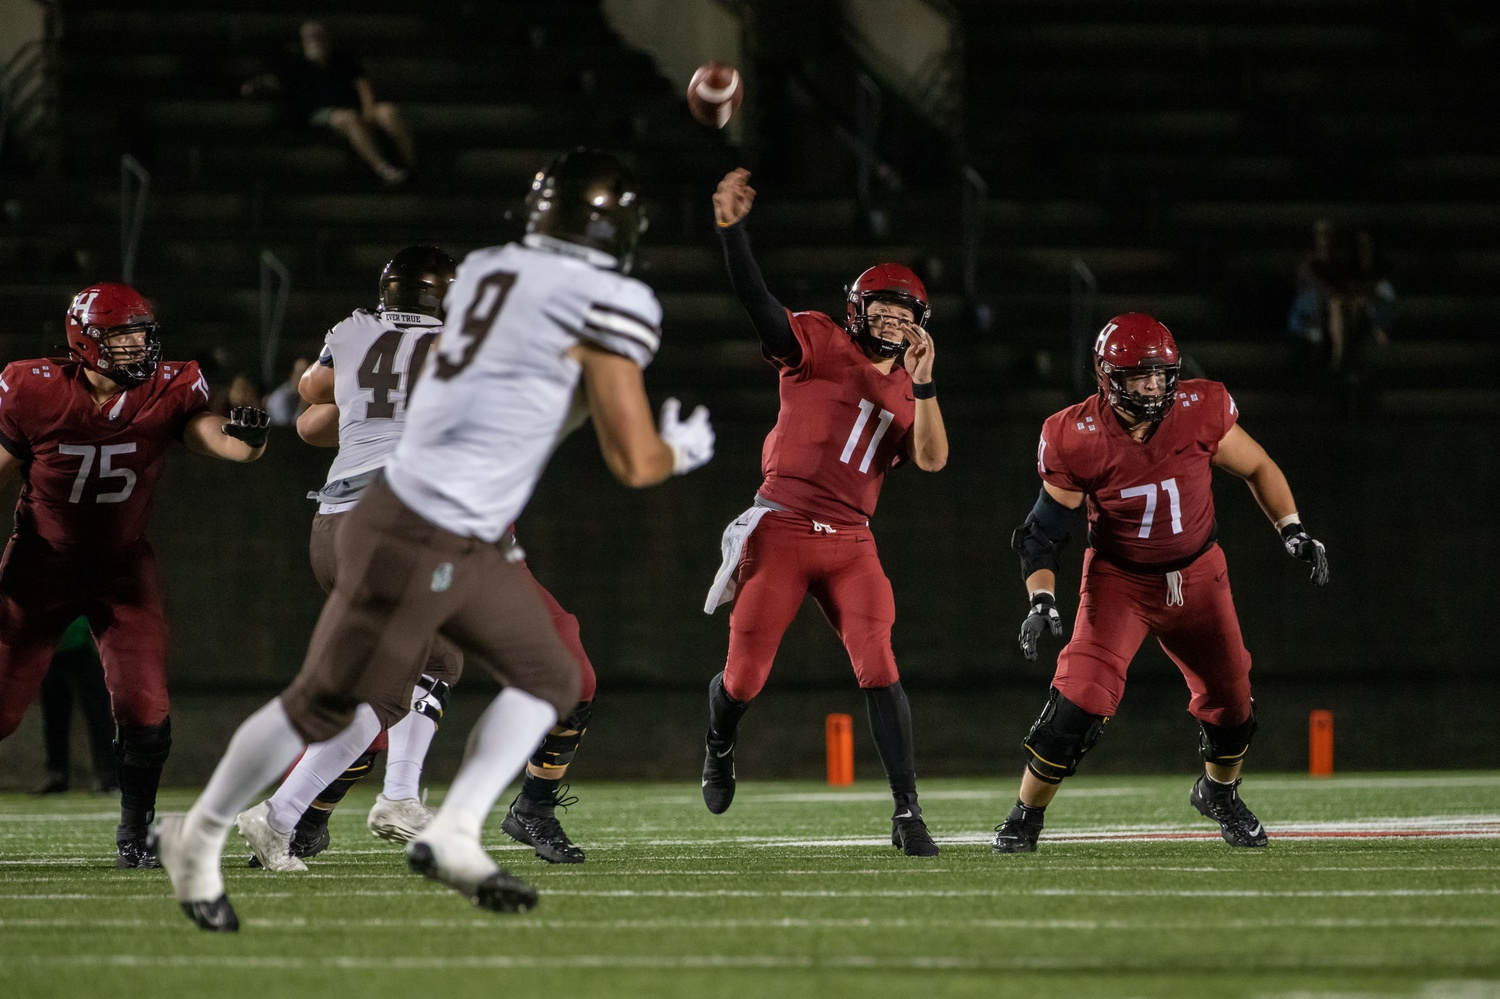 Sophomore quarterback Charlie Dean drives the ball downfield on one of his 24 passing attempts. Dean would finish the night 14-24 with 156 yards, one touchdown, and no interceptions.